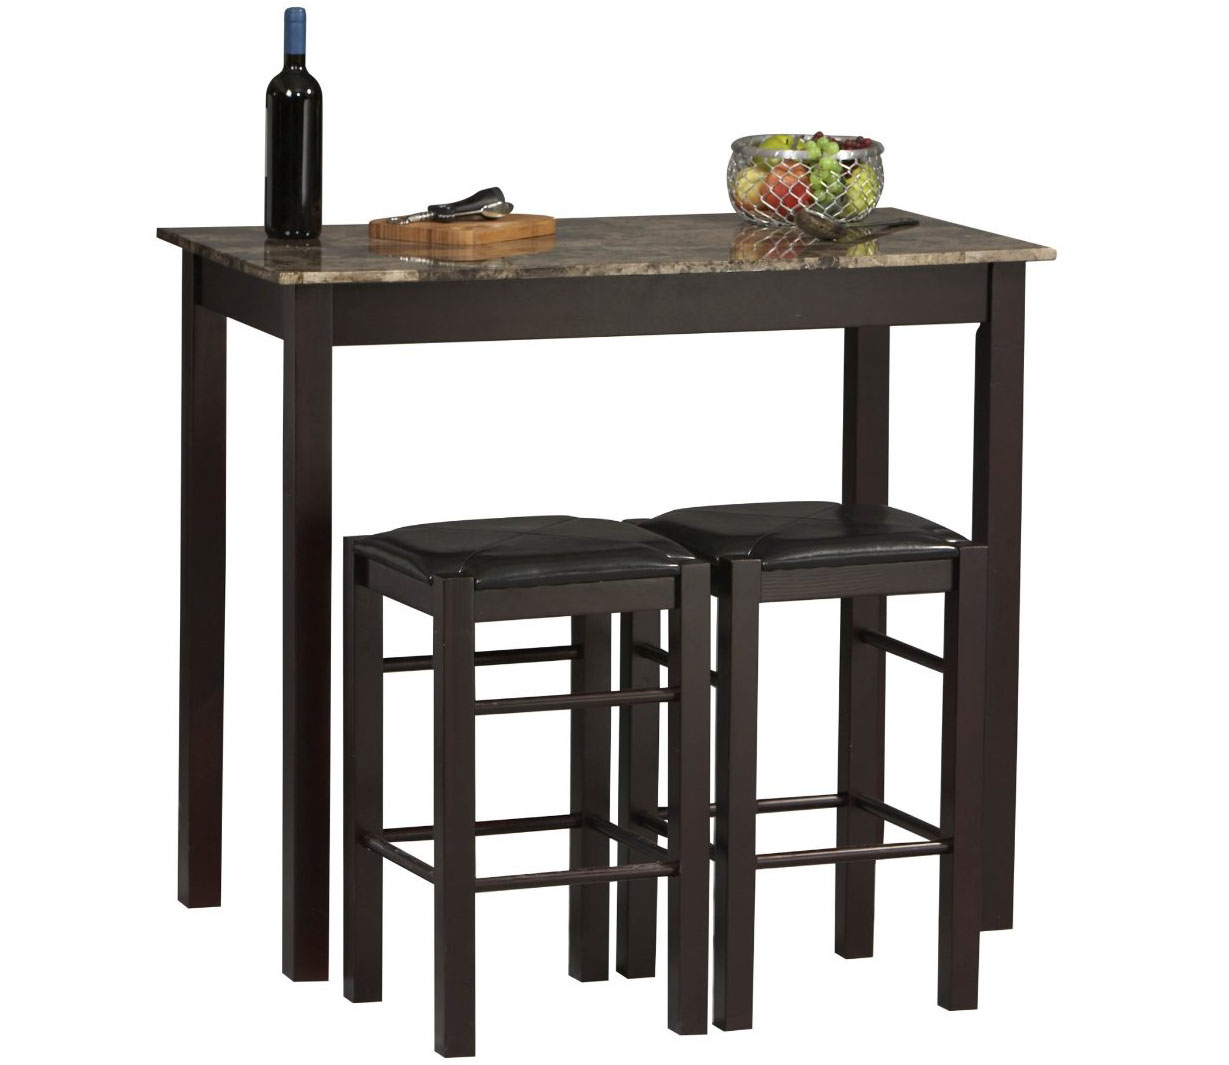 Bar Stools And Table Set Counter Height Kitchen Tables Home Decorator Shop